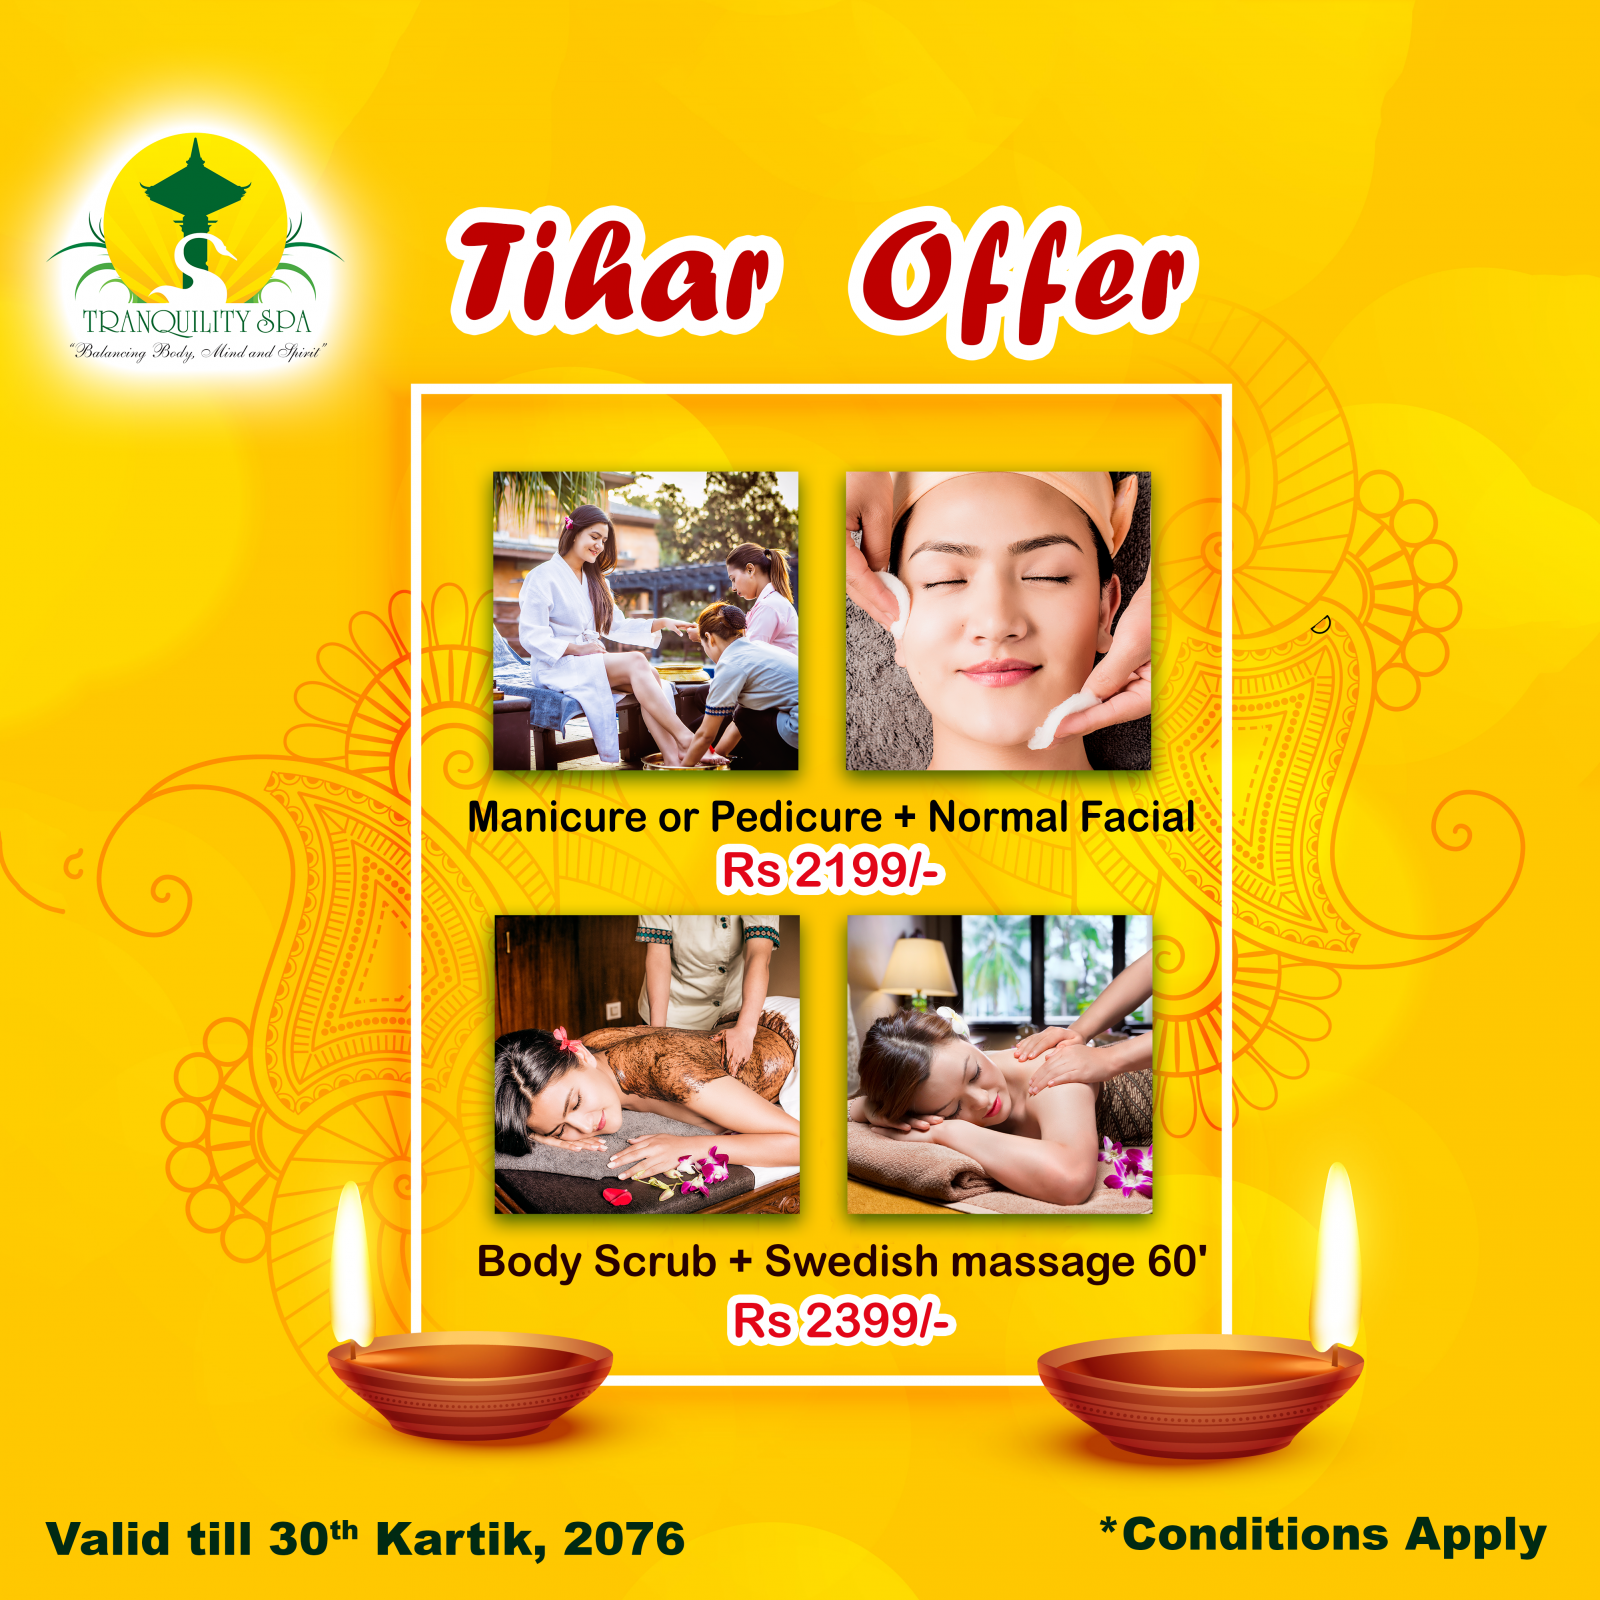 Tihar Offer (Valid till 30th Kartik, 2076)